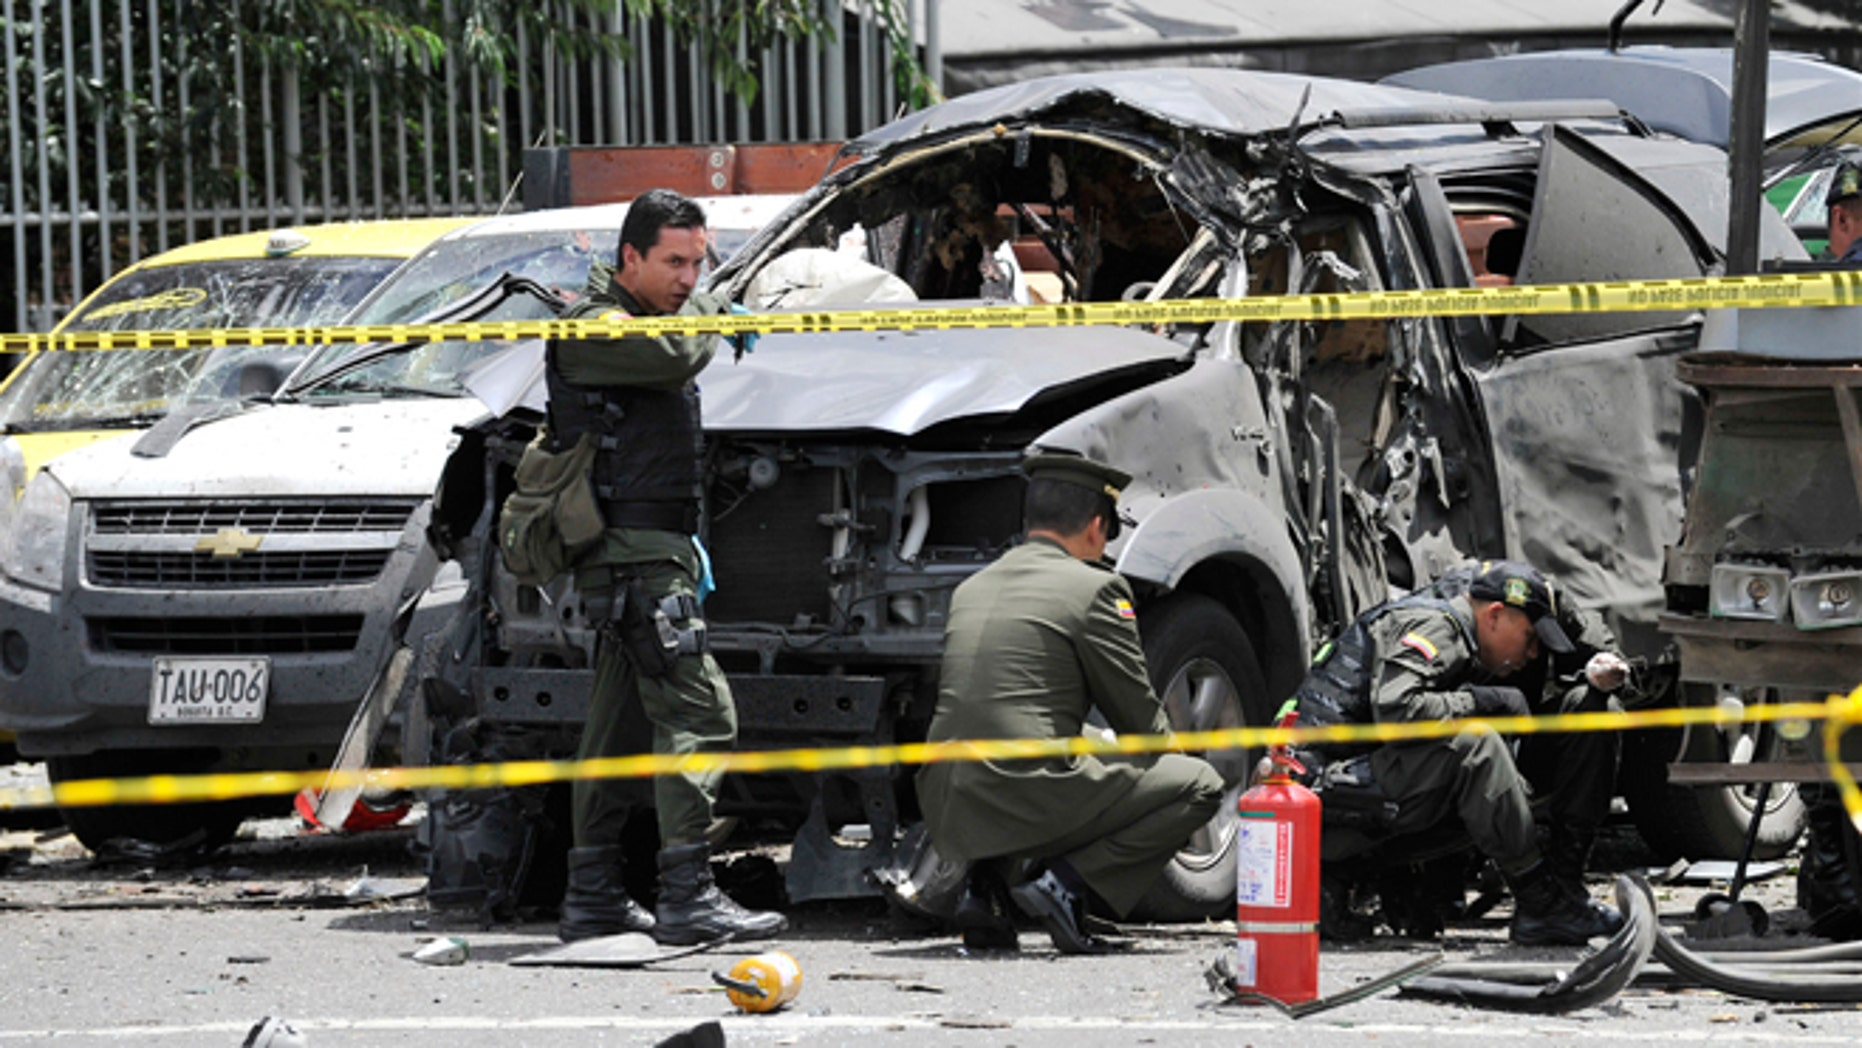 May 15, 2012: Police inspect the scene after a bomb exploded in Bogota, Colombia.